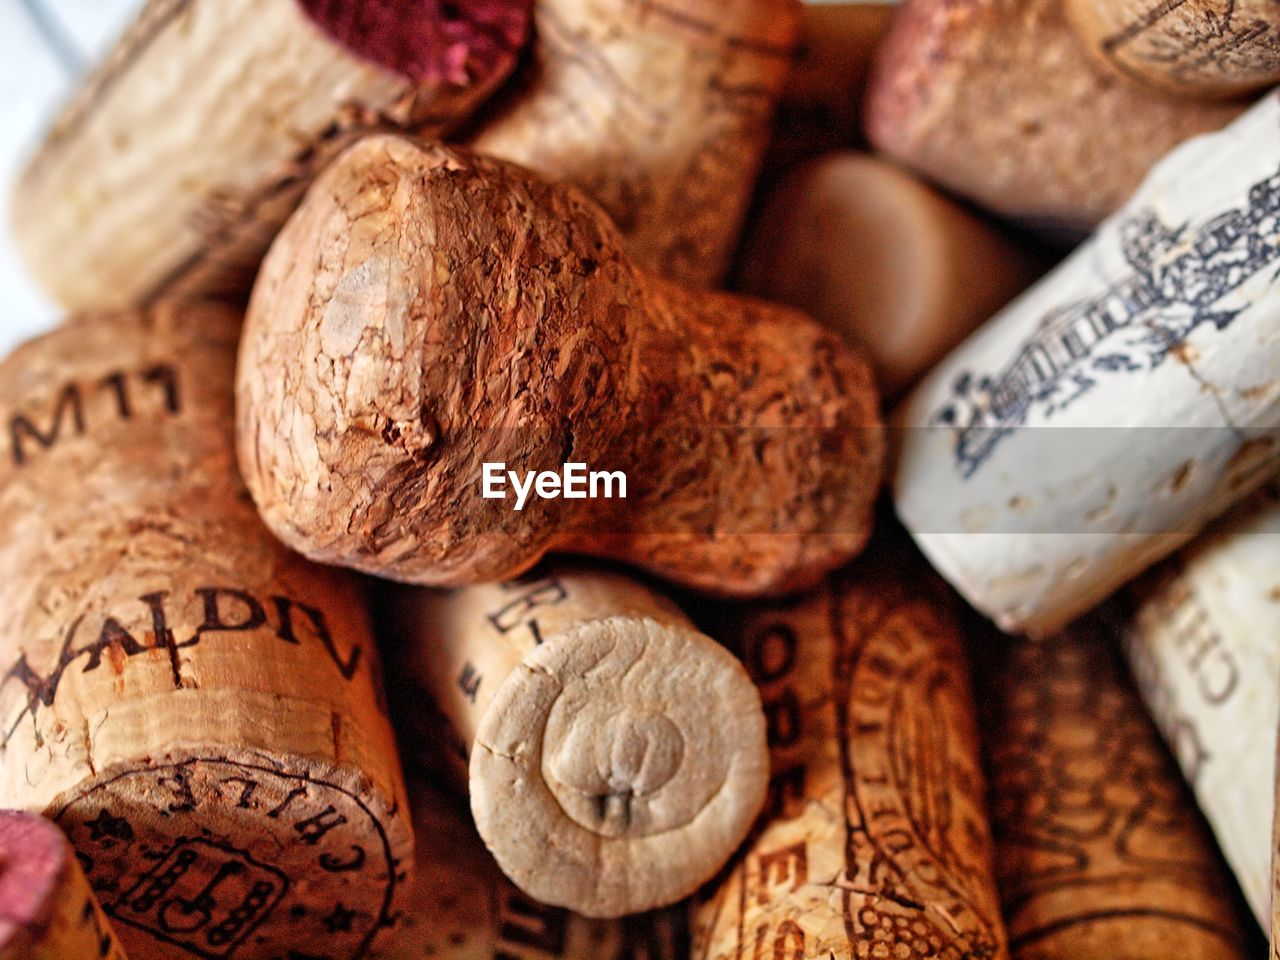 Detail shot of wine corks